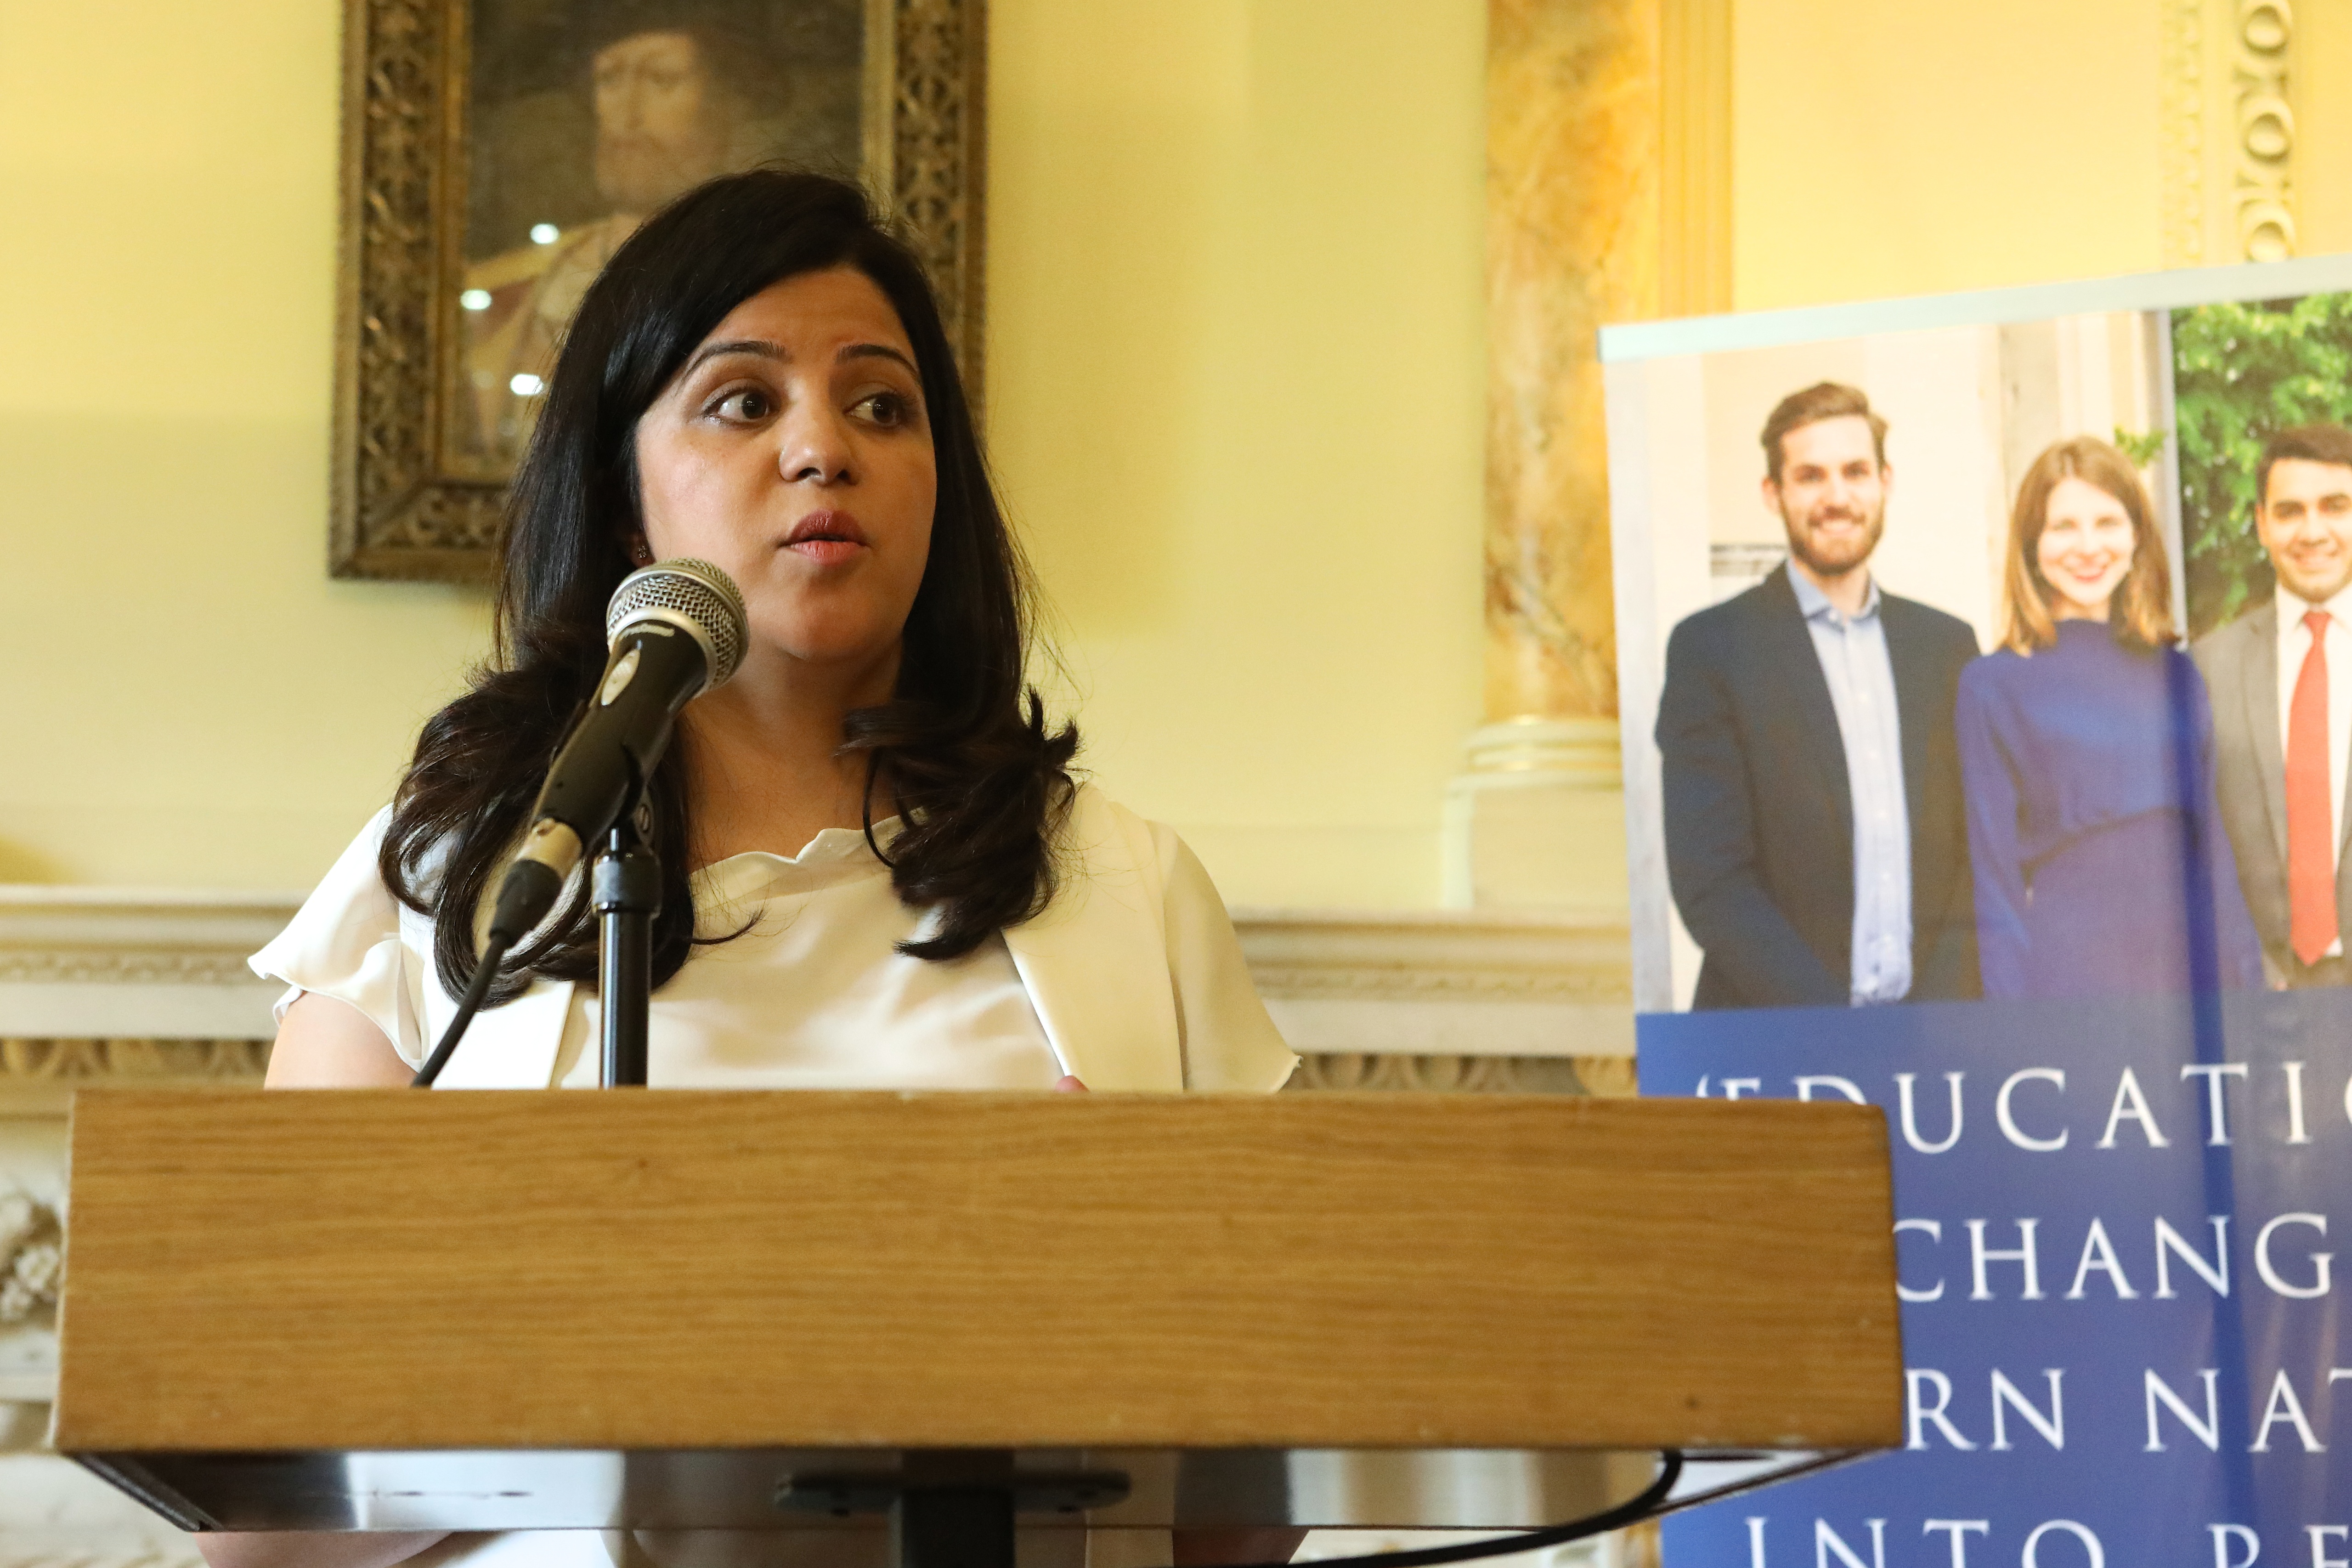 Bynvant Sandhu shared how her Fulbright experience impacted her personally and professionally